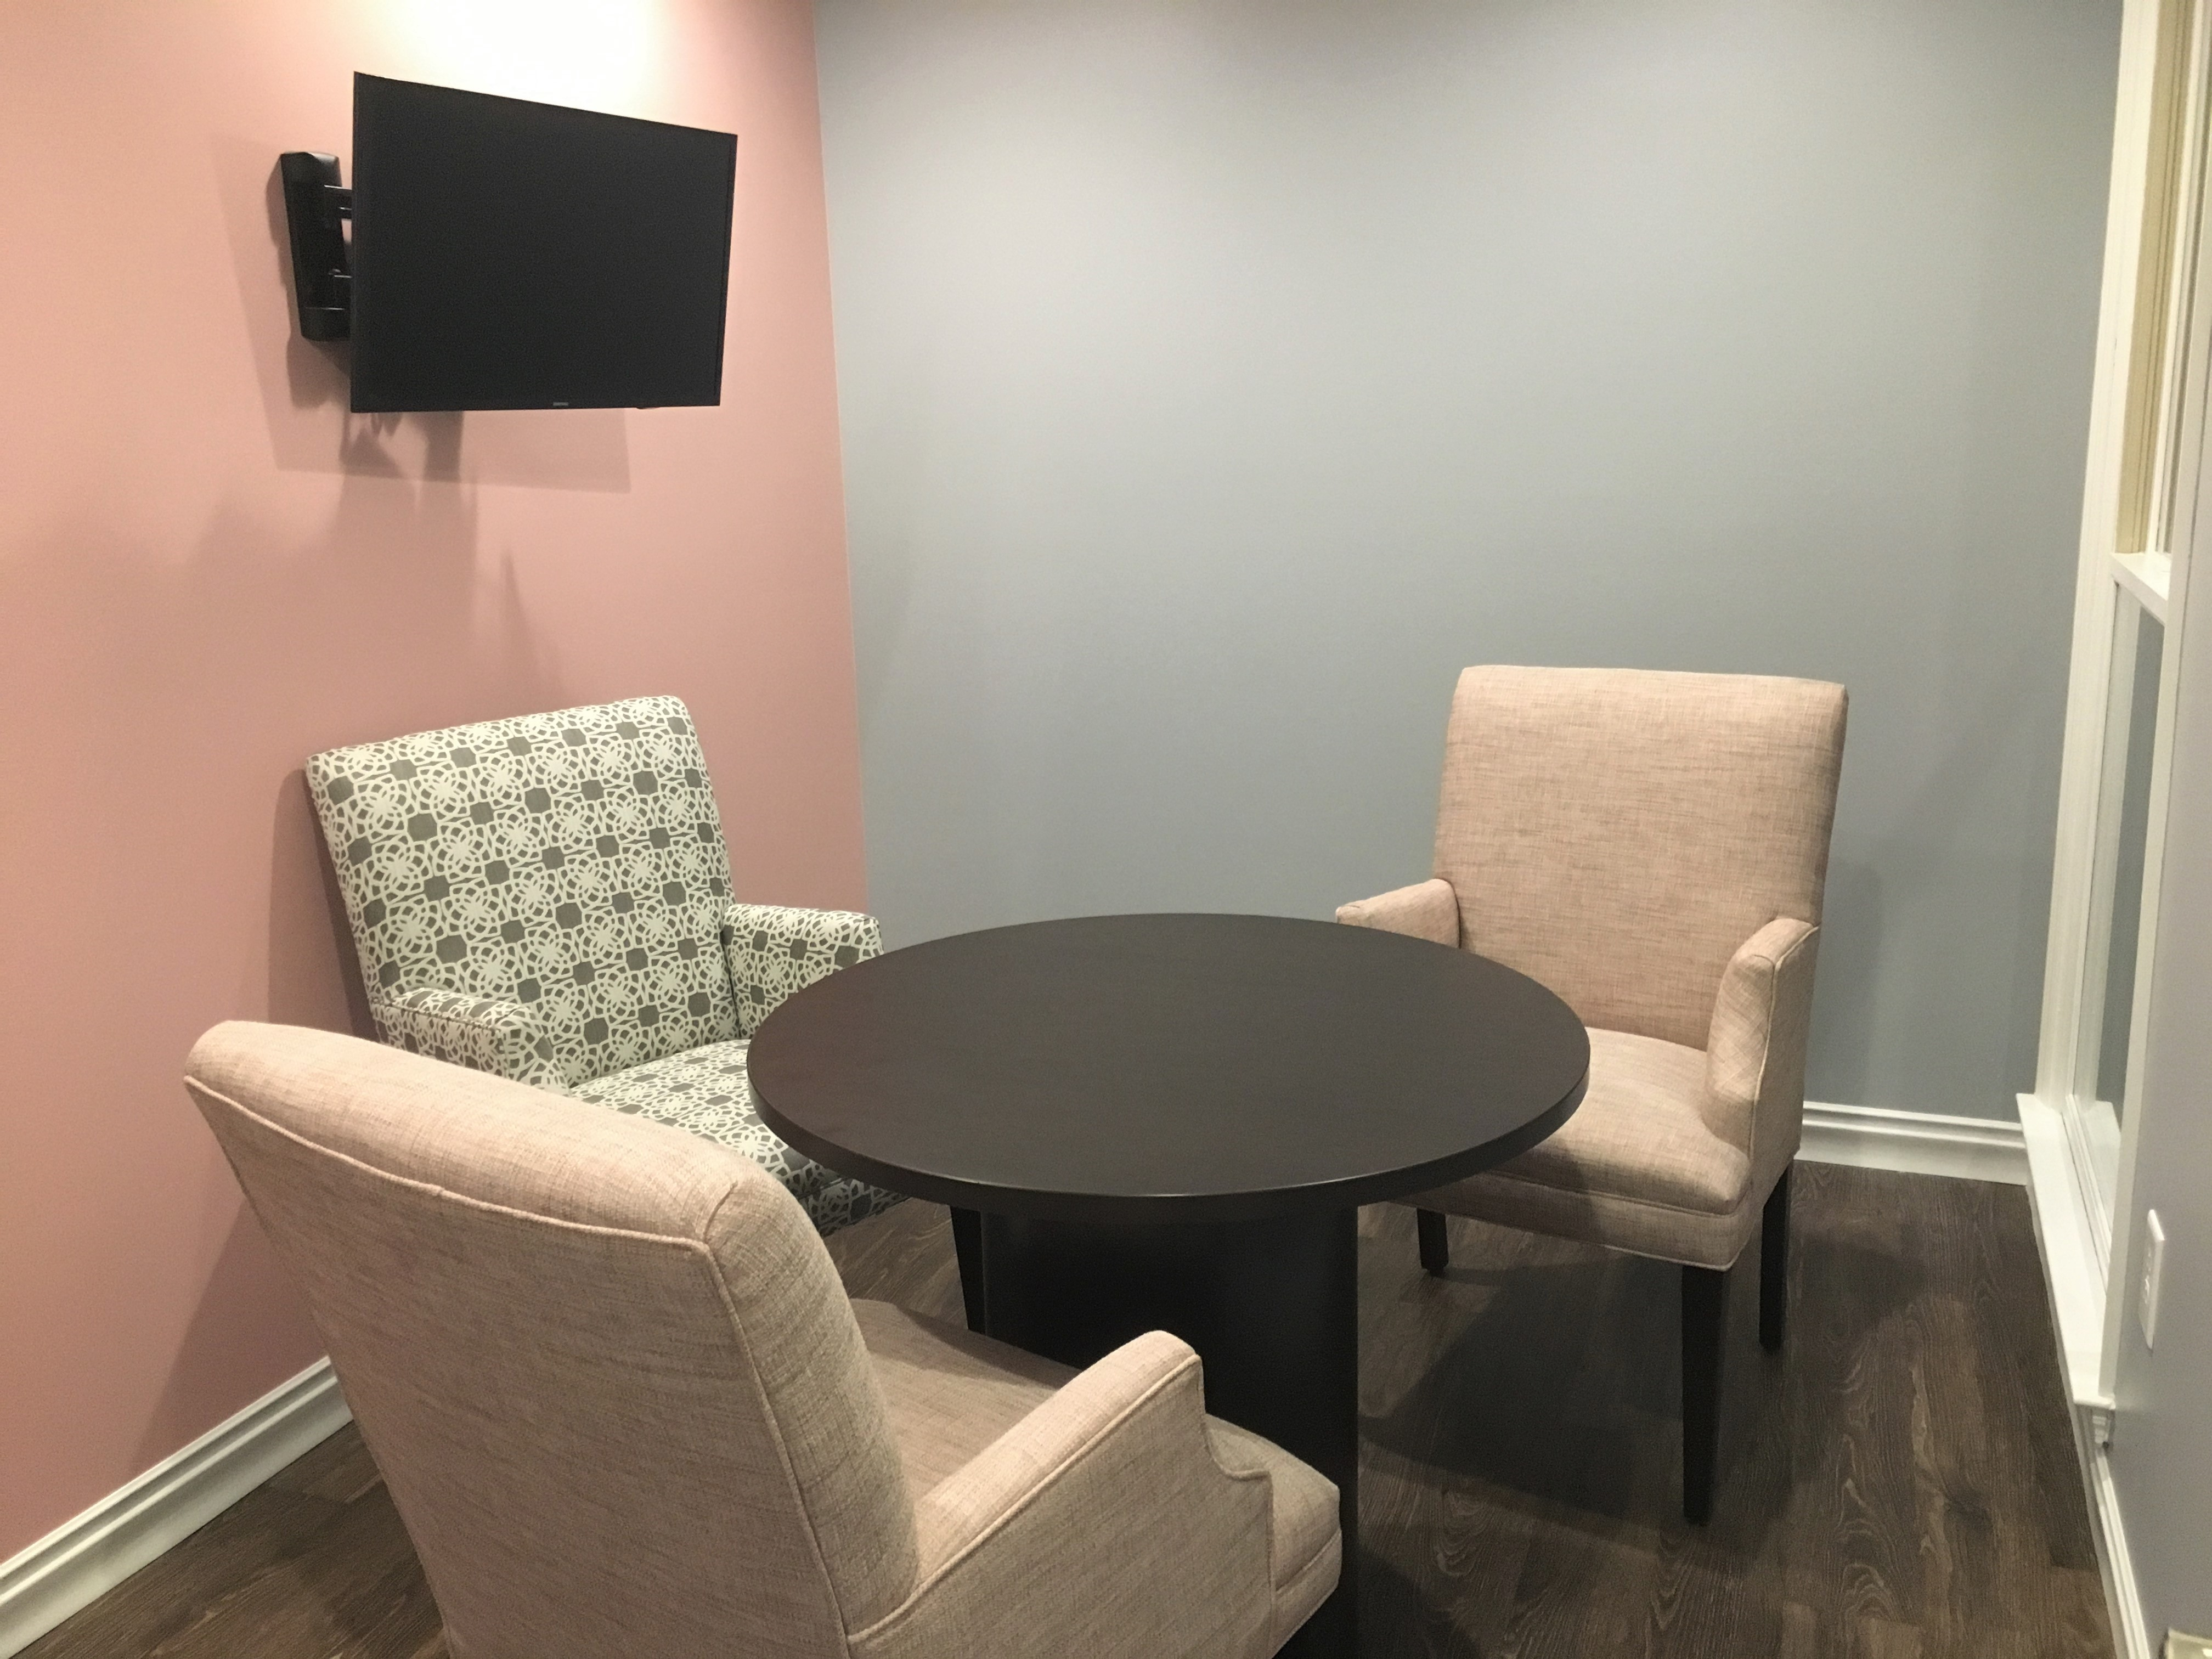 mammogram consult room